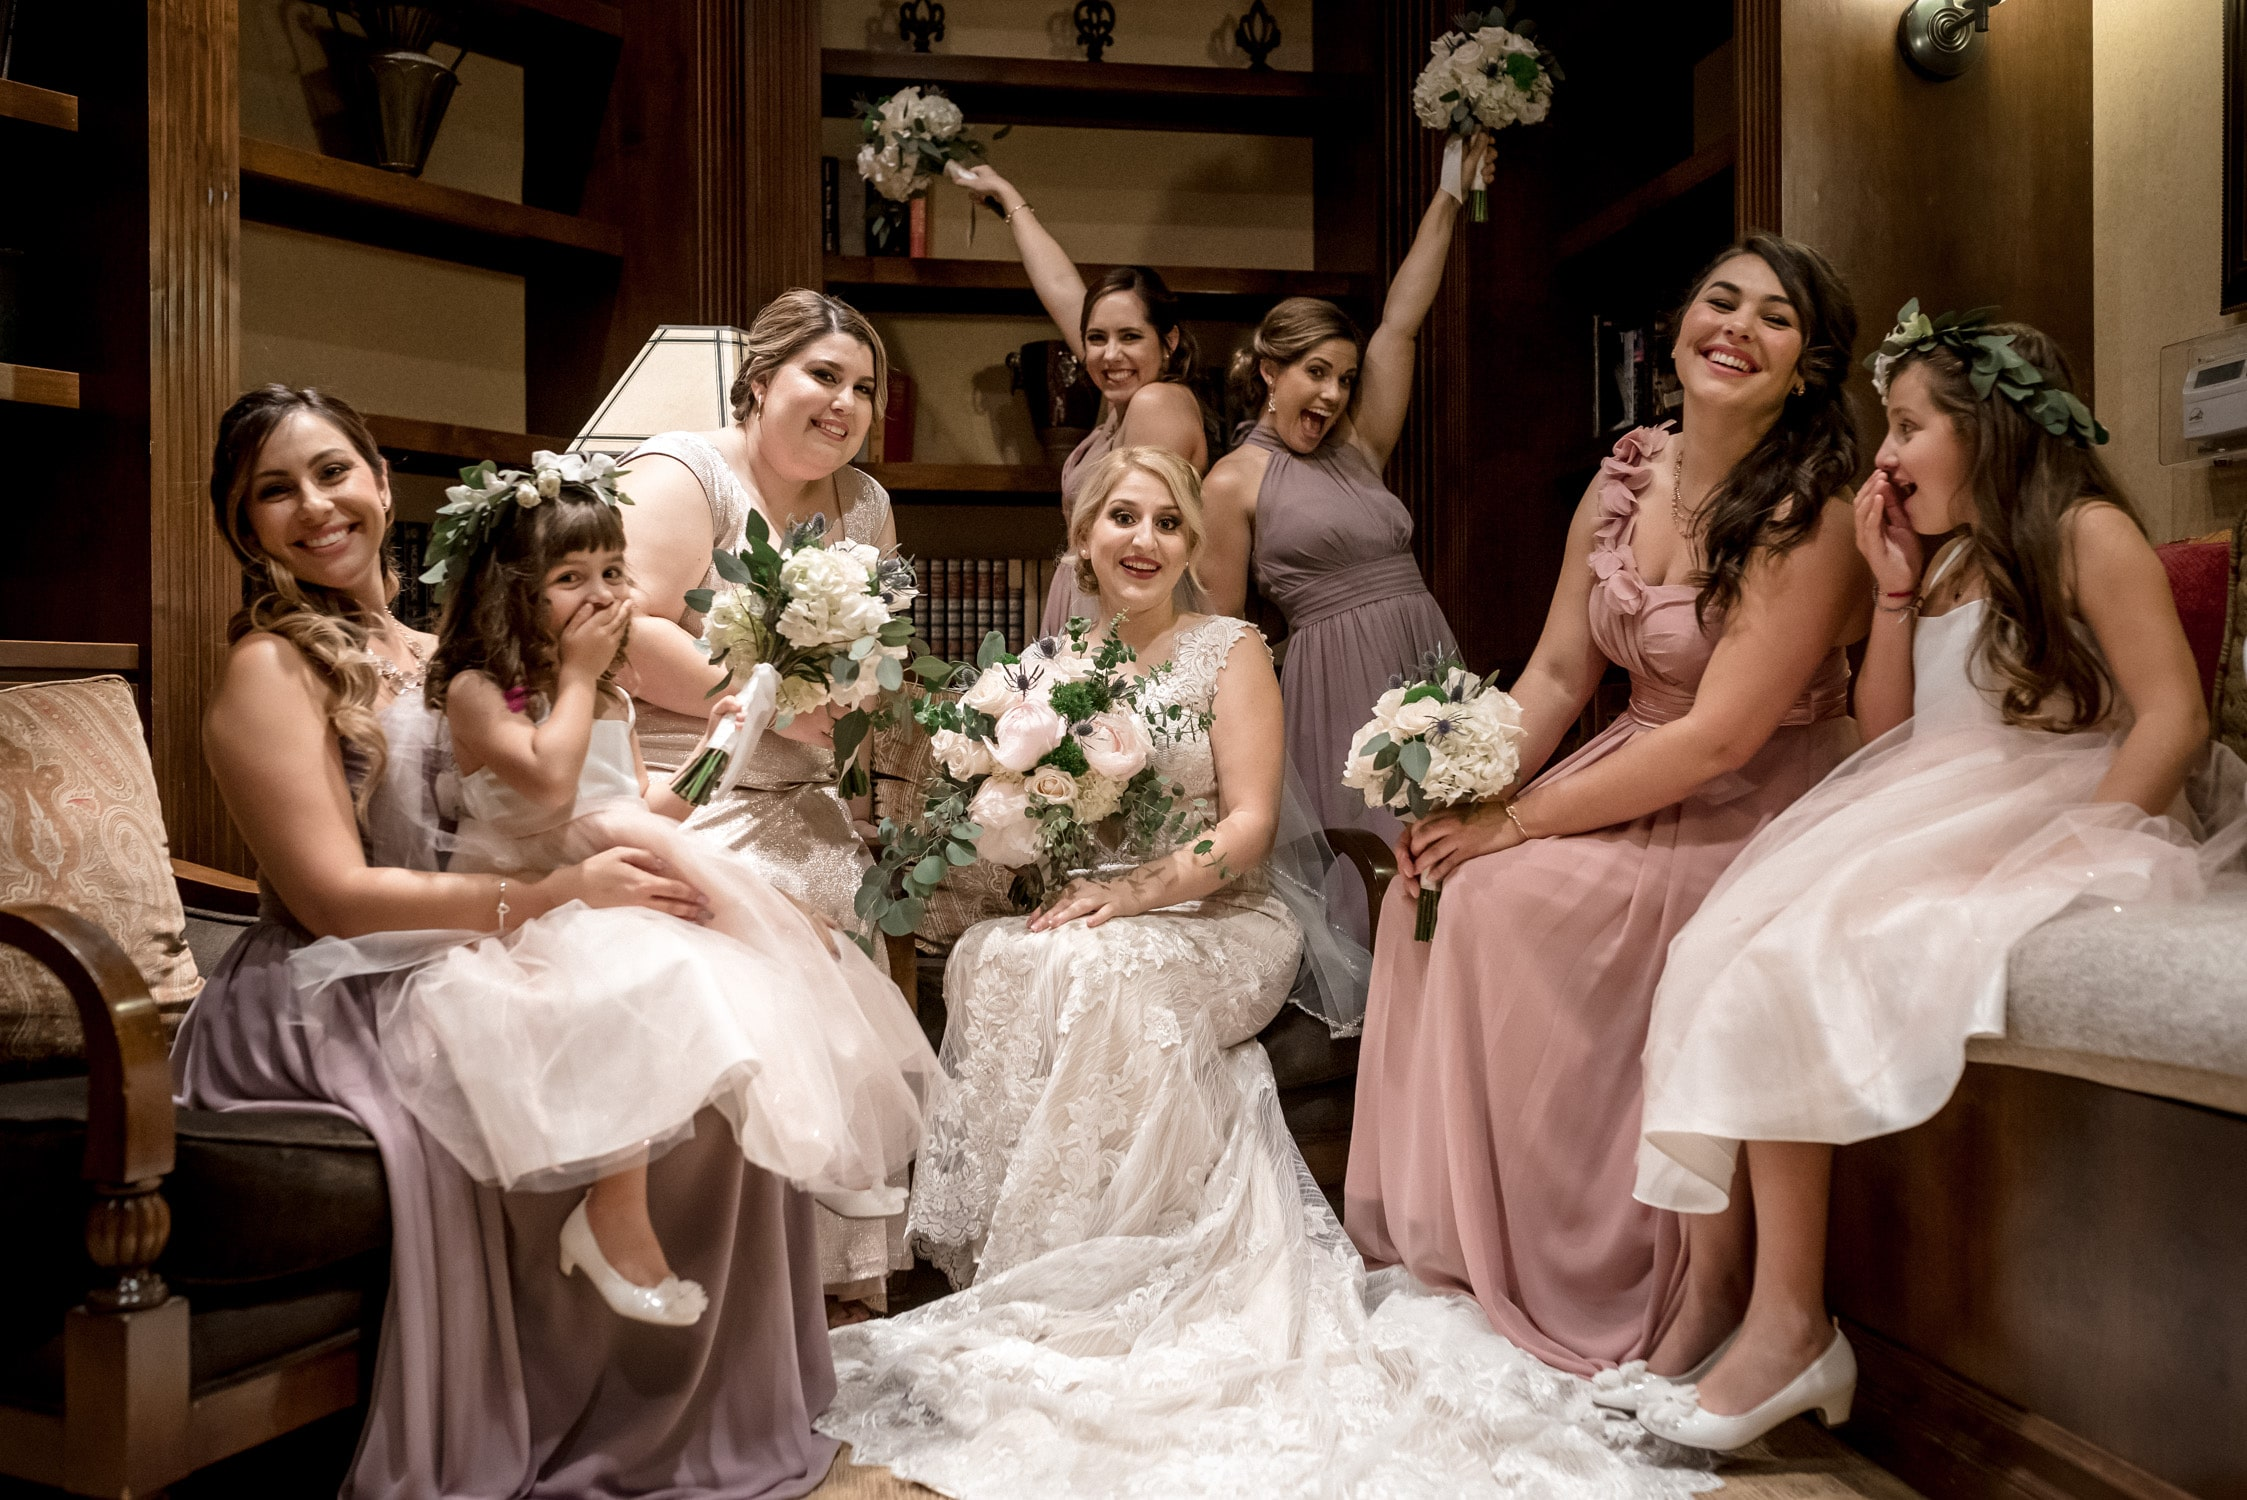 bridesmaids encouraged by Palm Springs Wedding Photographer to have fun posing